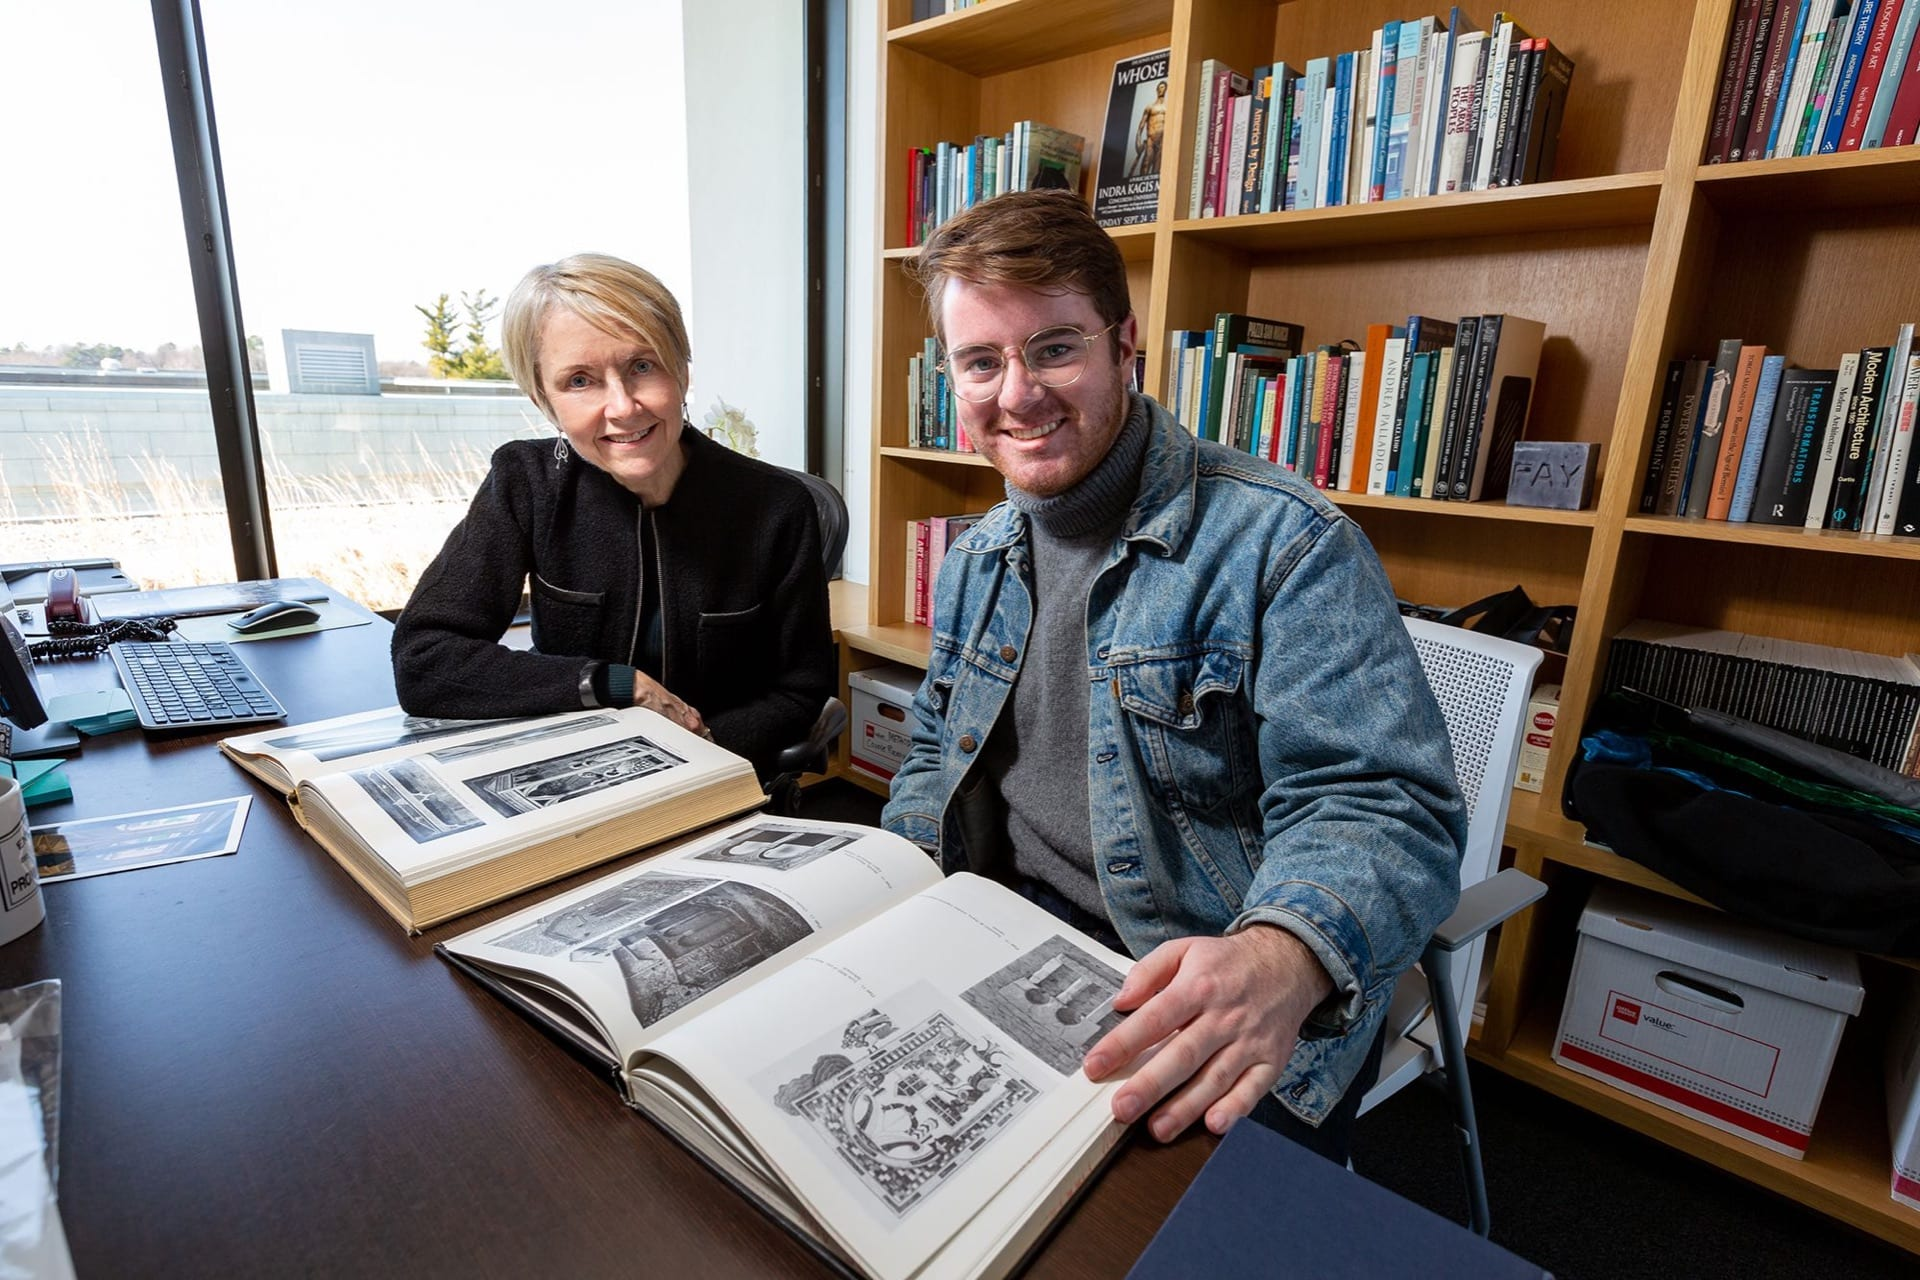 Female professor and male student look at art books in her office.